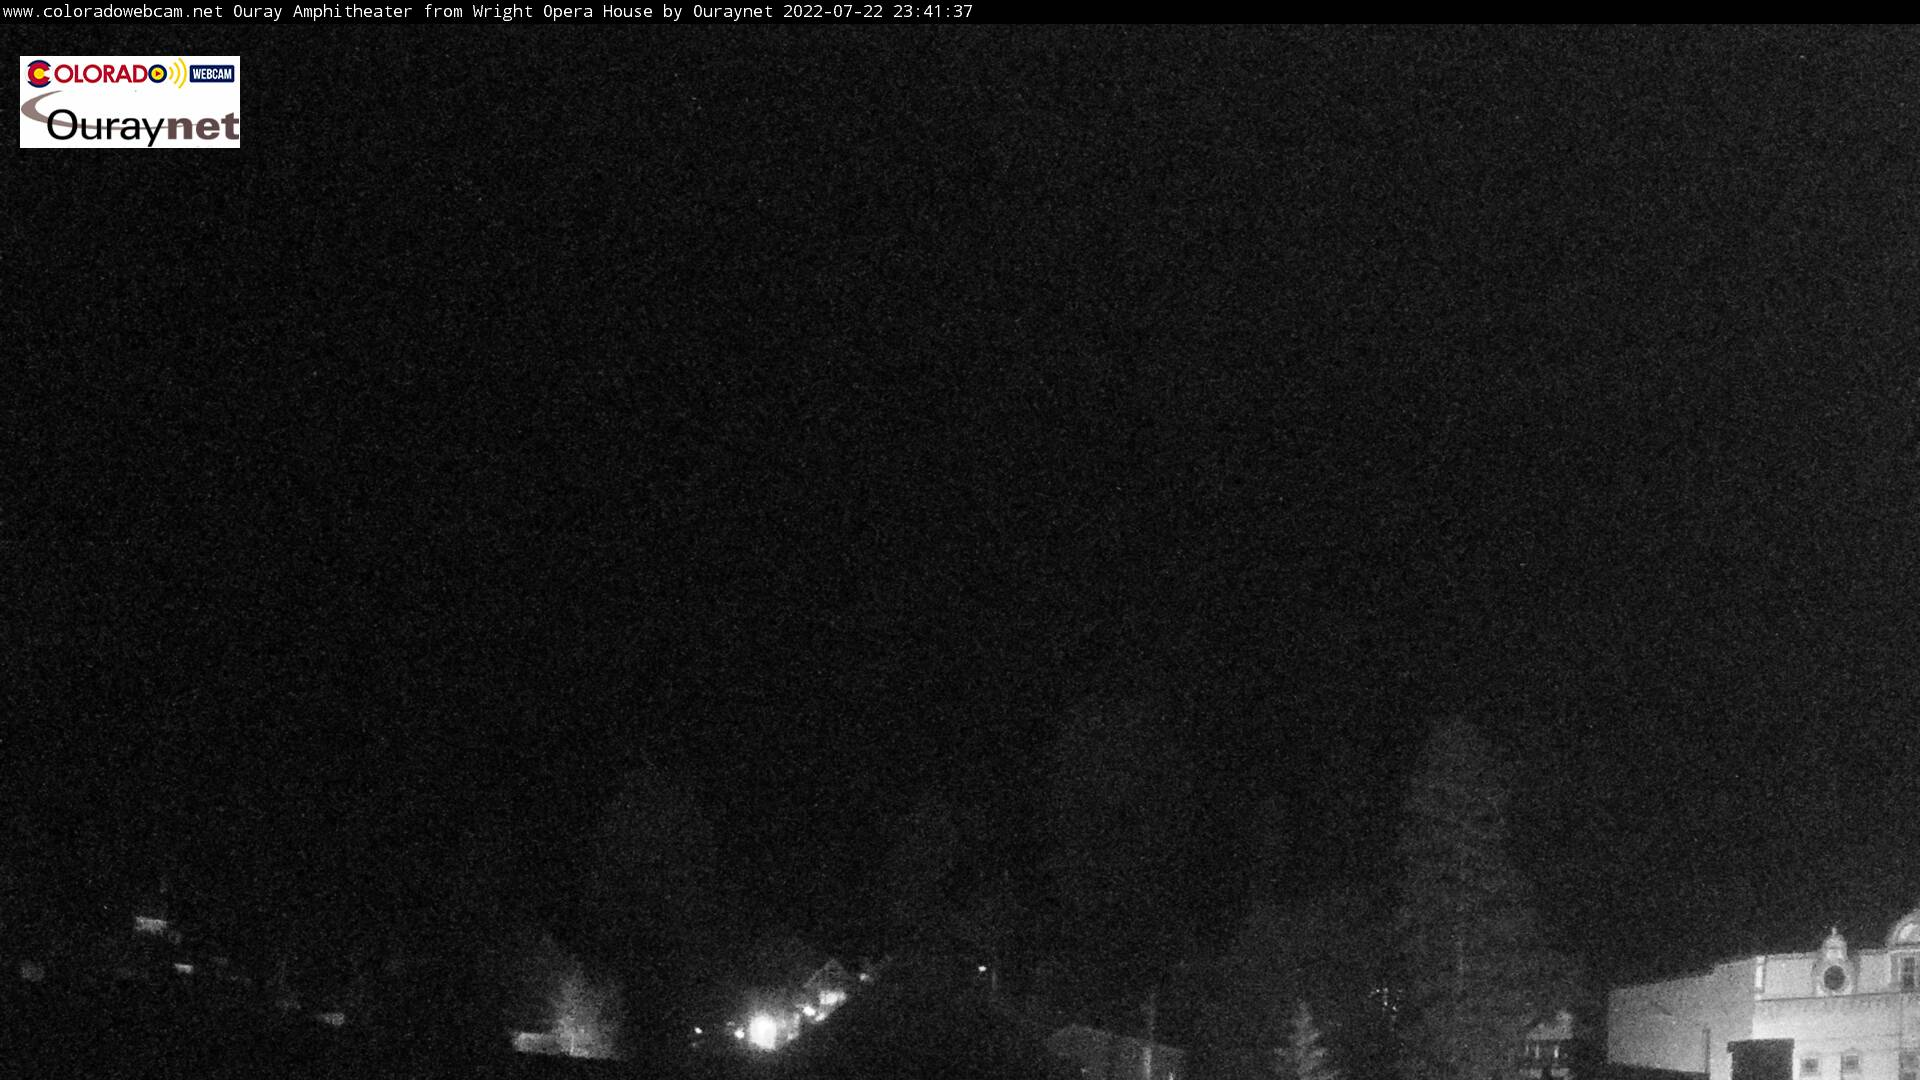 Ouray Town Webcam by Ouraynet and coloradowebcam.net